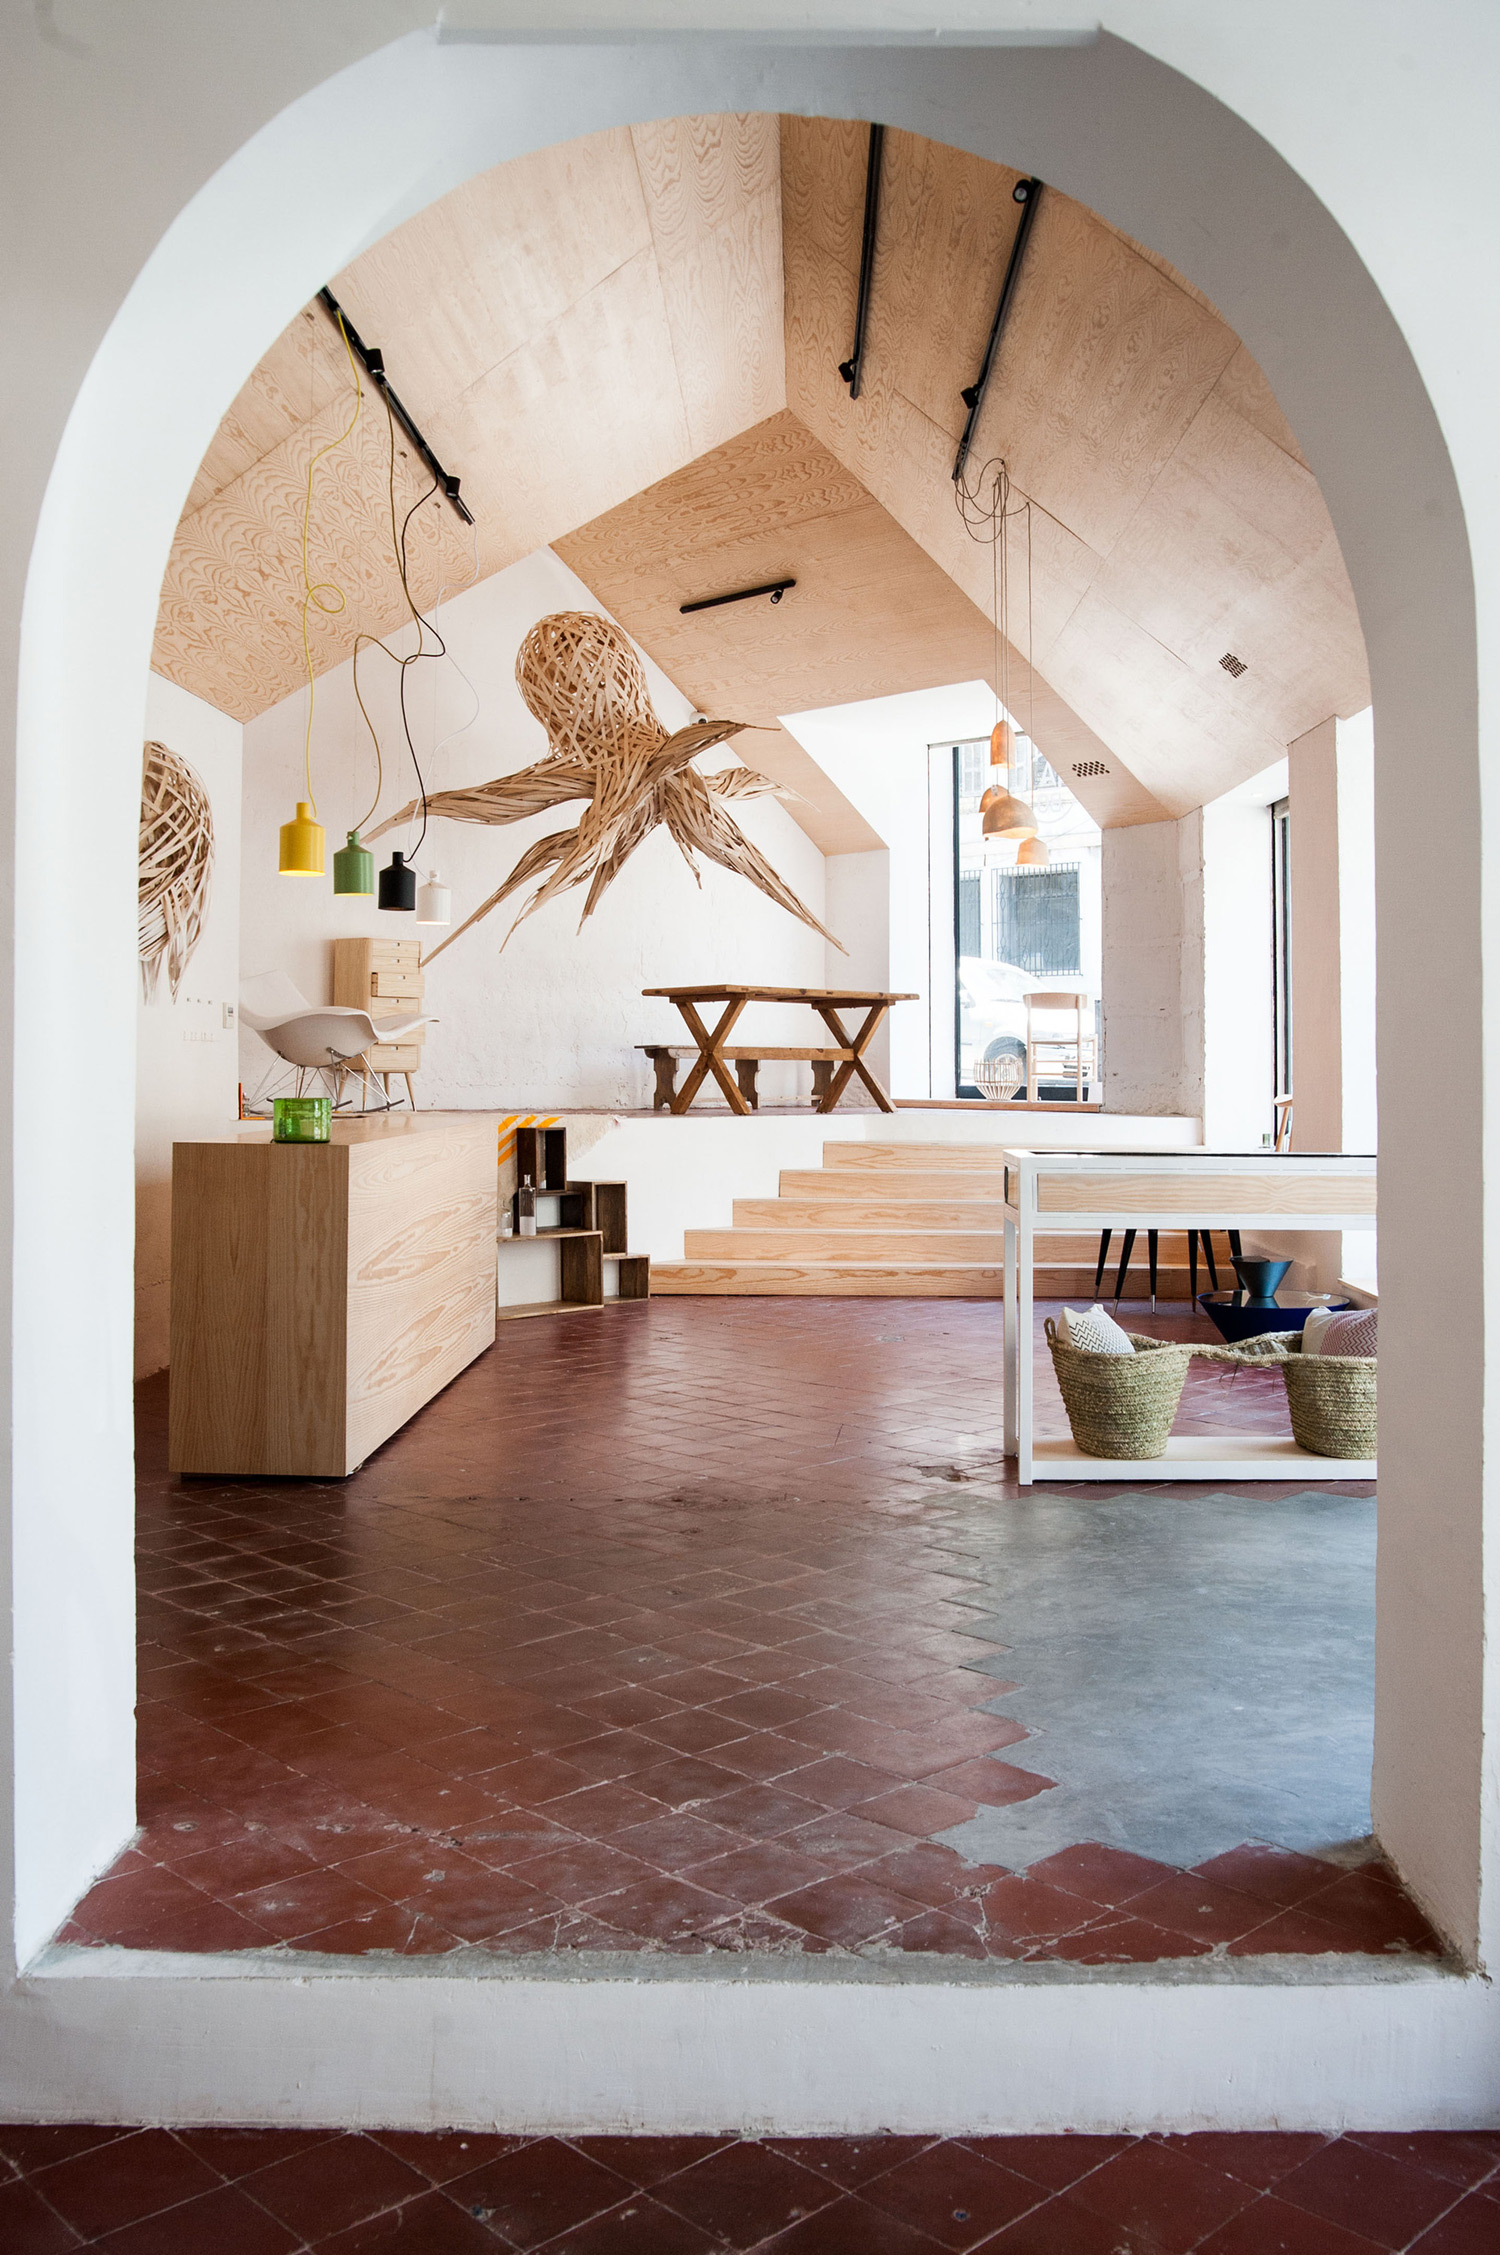 Shop and Exhibition Space in Marseille / Atelier M3a Architectes (6)